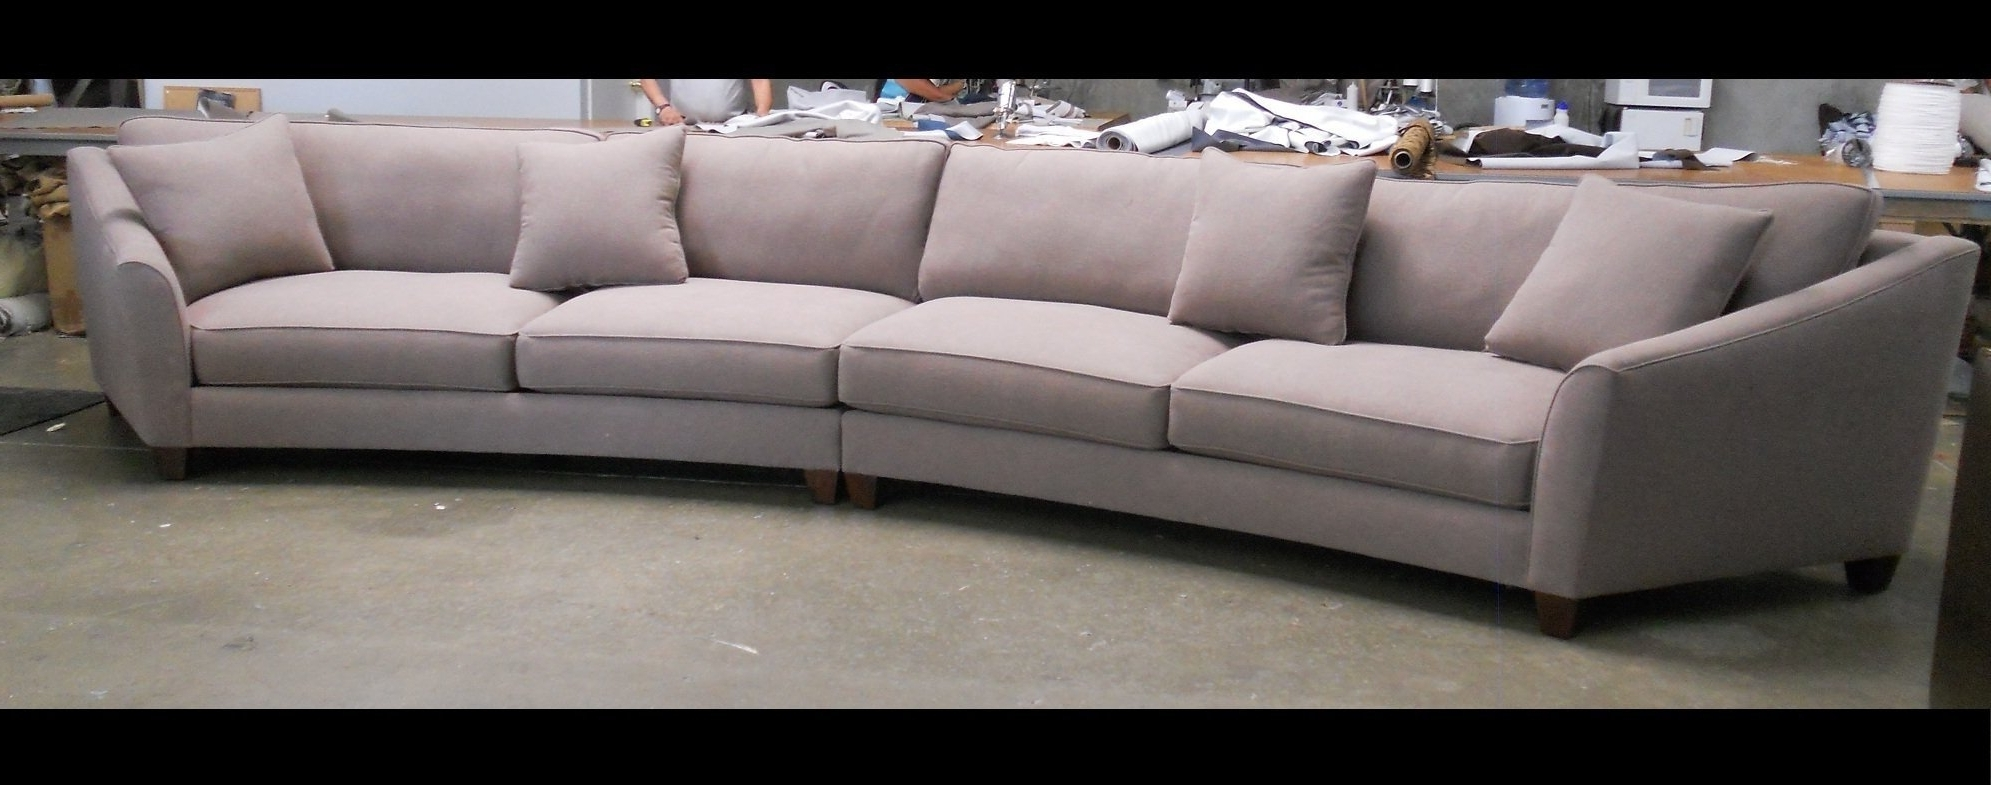 Furniture : 5060 Recliner Sectional Sofa Costco $699 Corner Couch With 2018 80X80 Sectional Sofas (View 11 of 15)